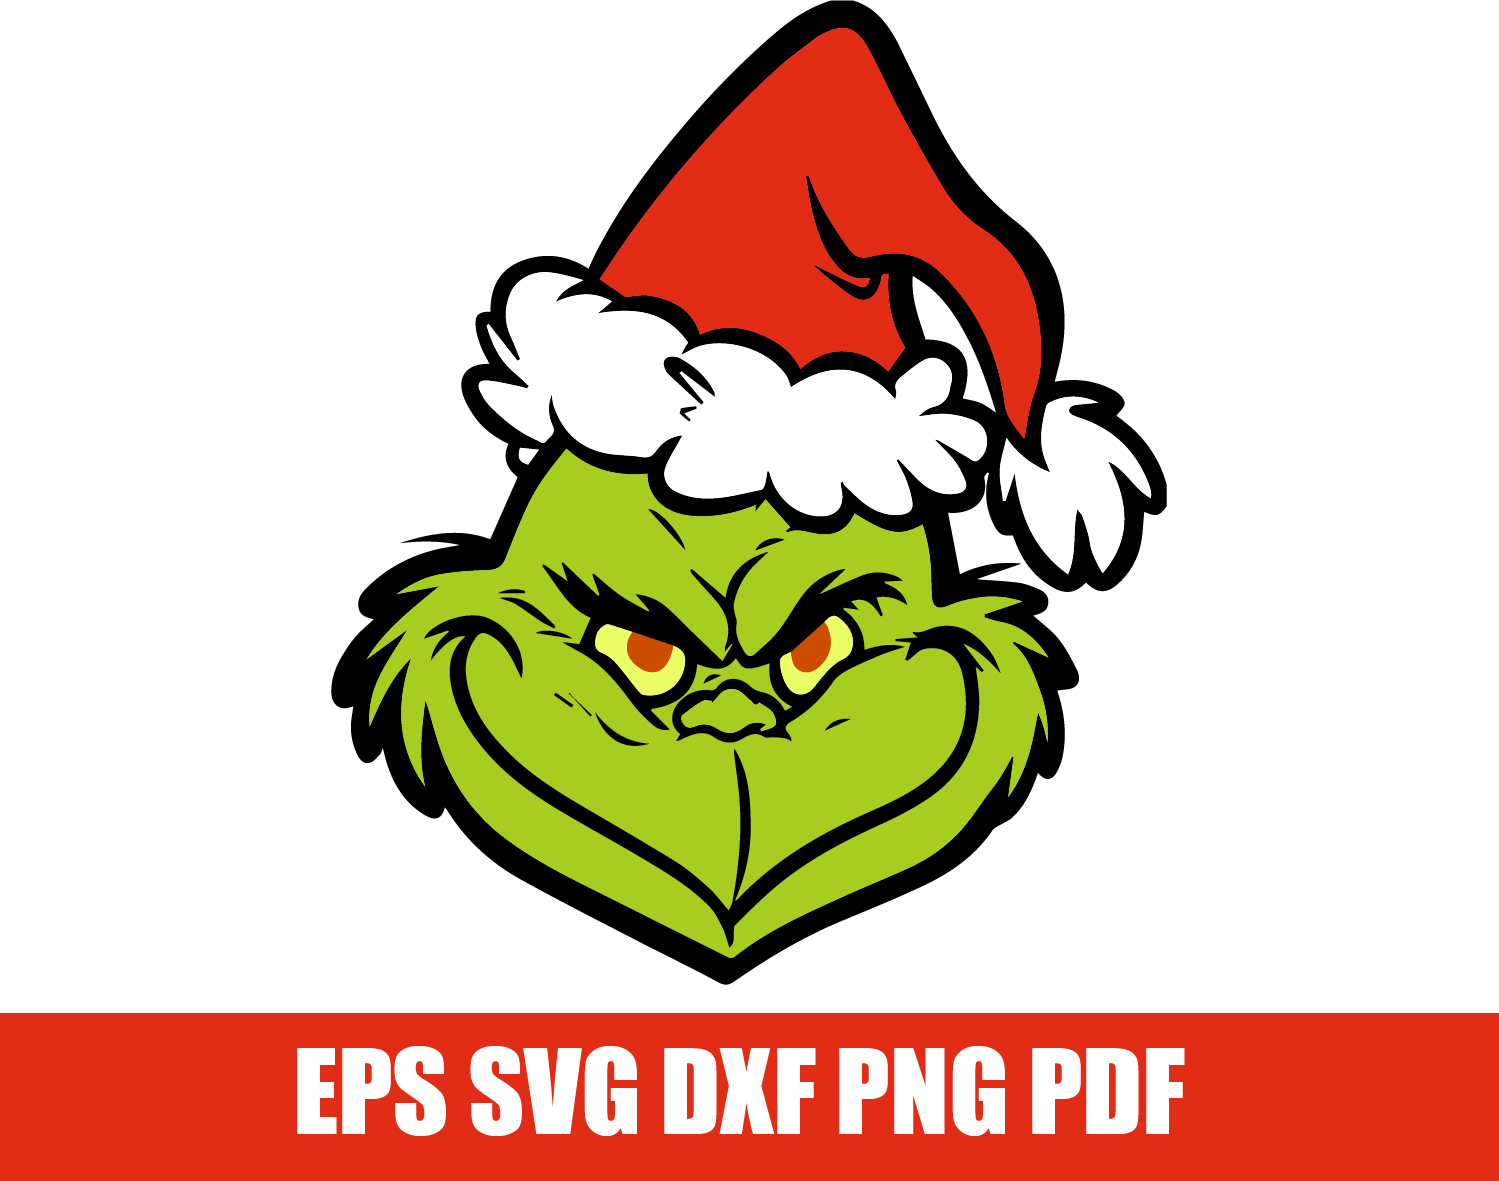 It's just a picture of Handy Printable Grinch Face